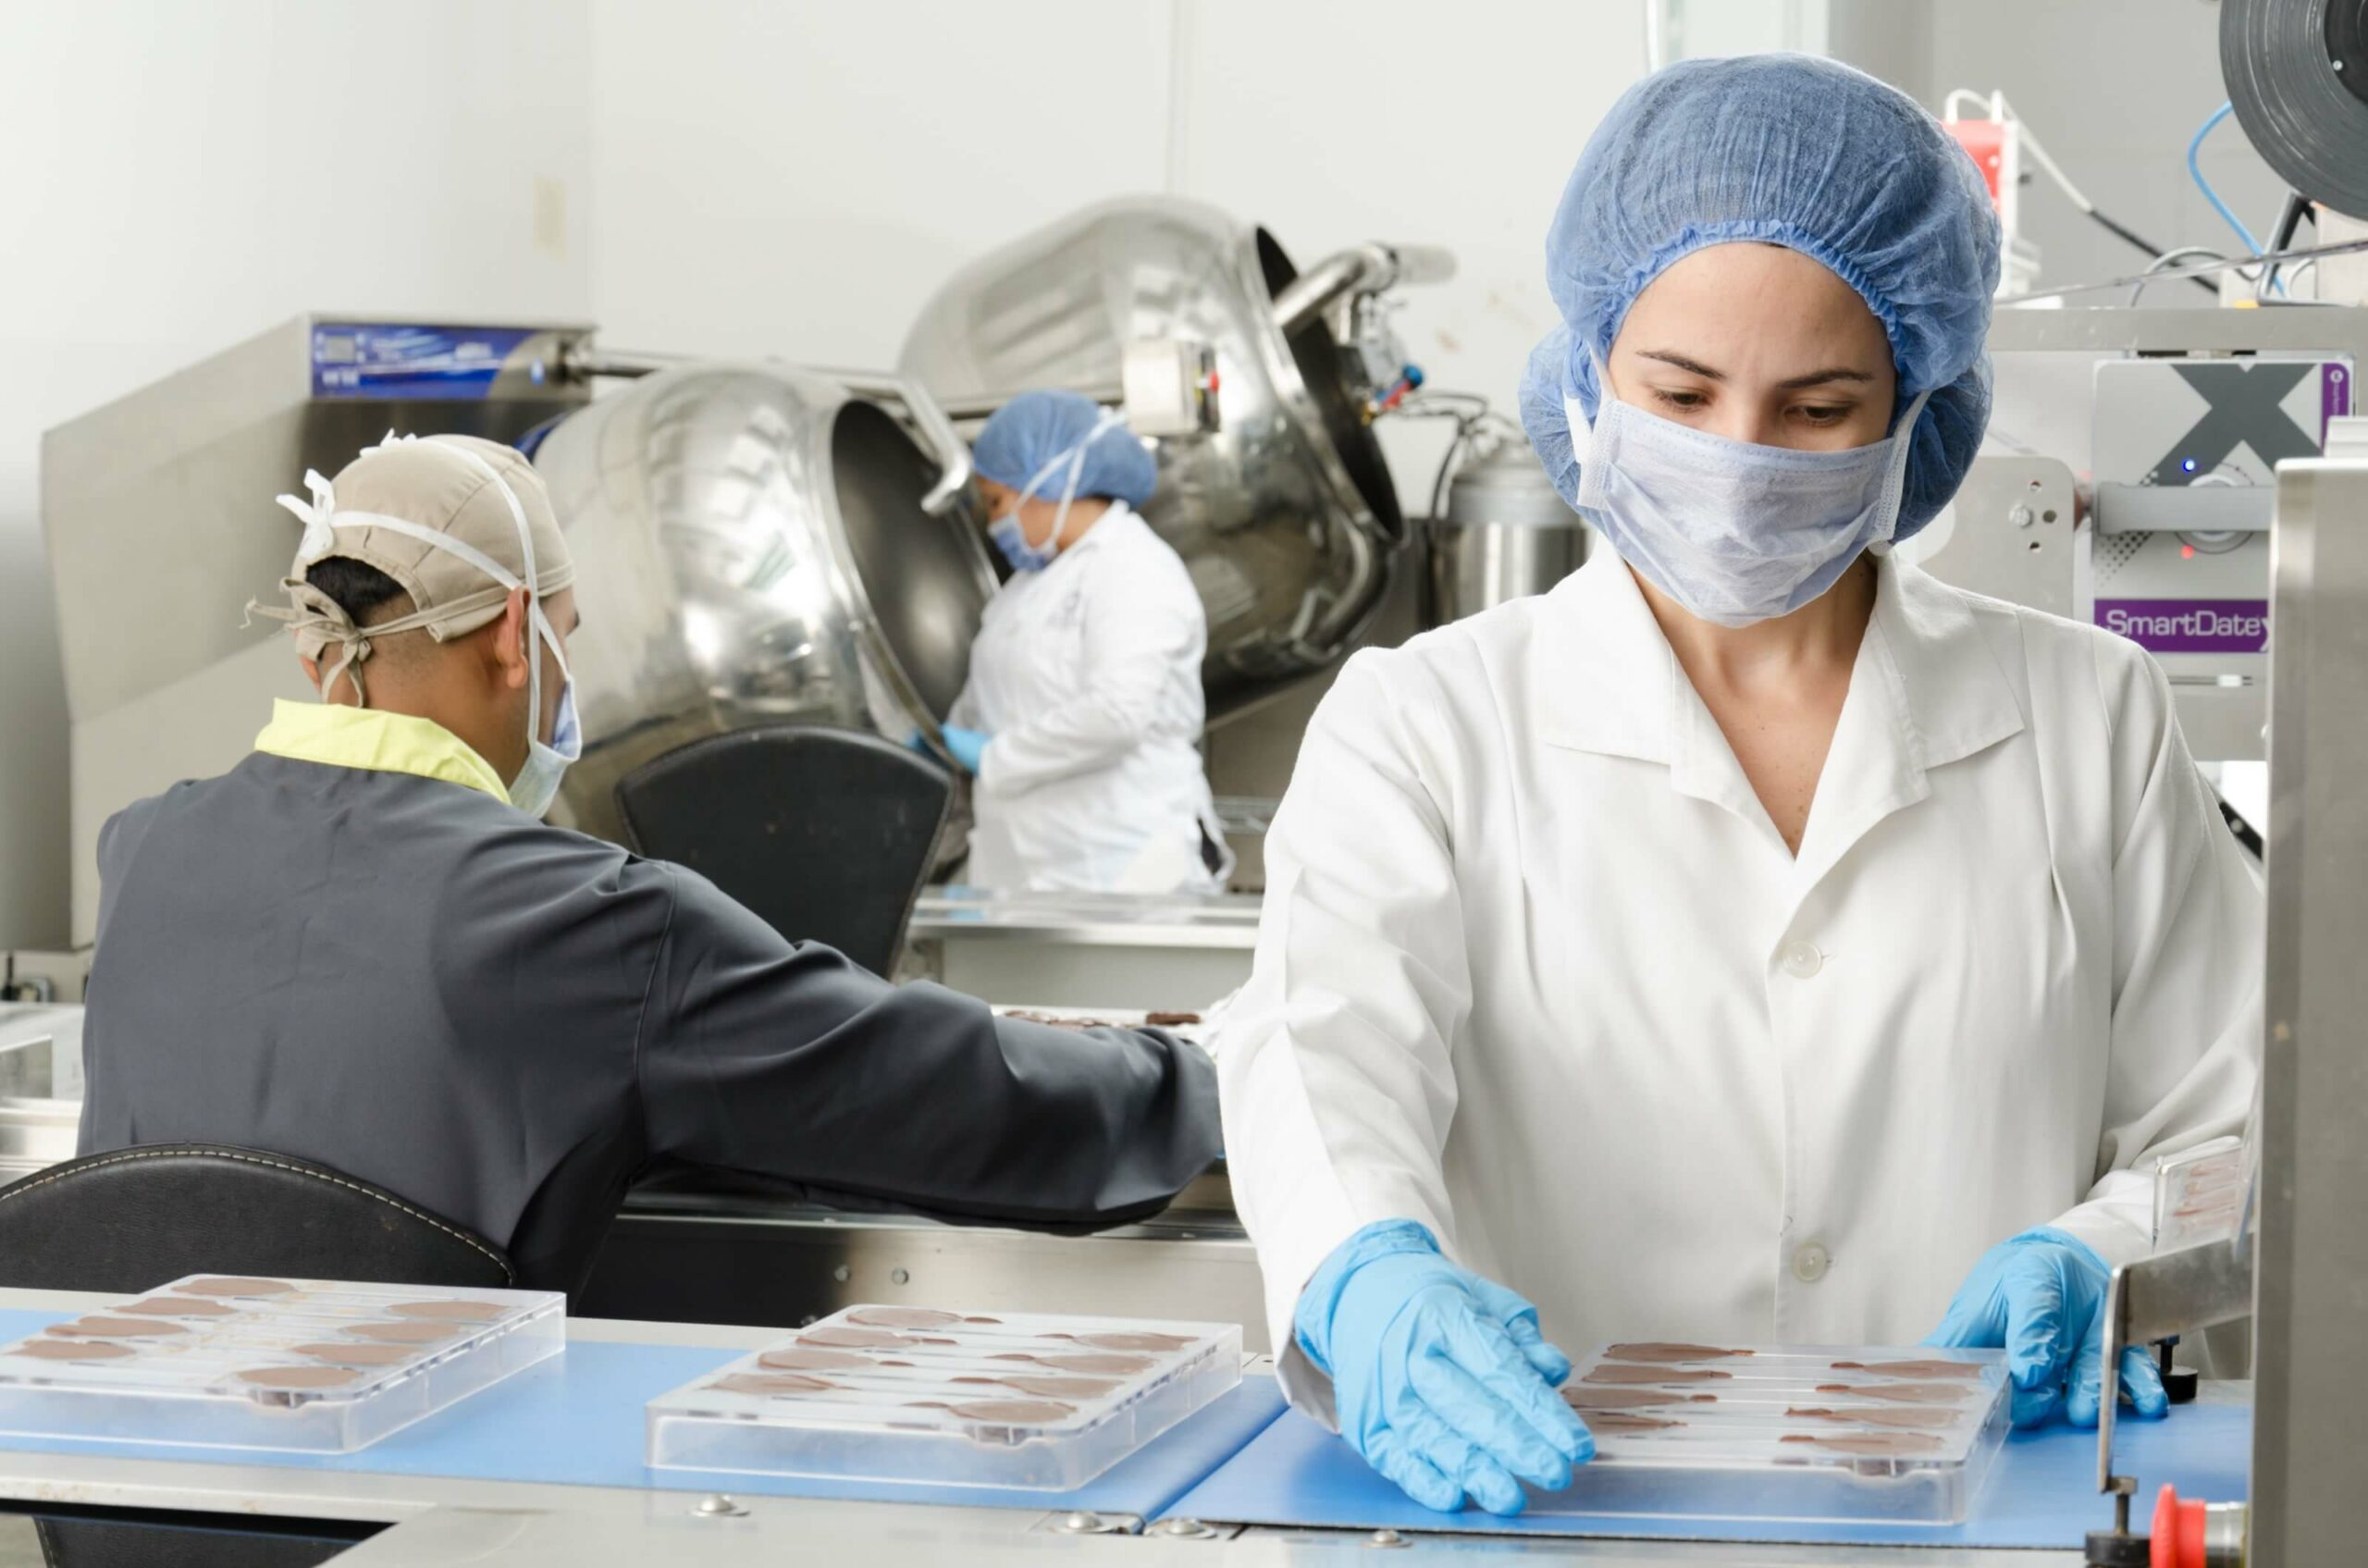 personnel wearing protective suits inside a lab